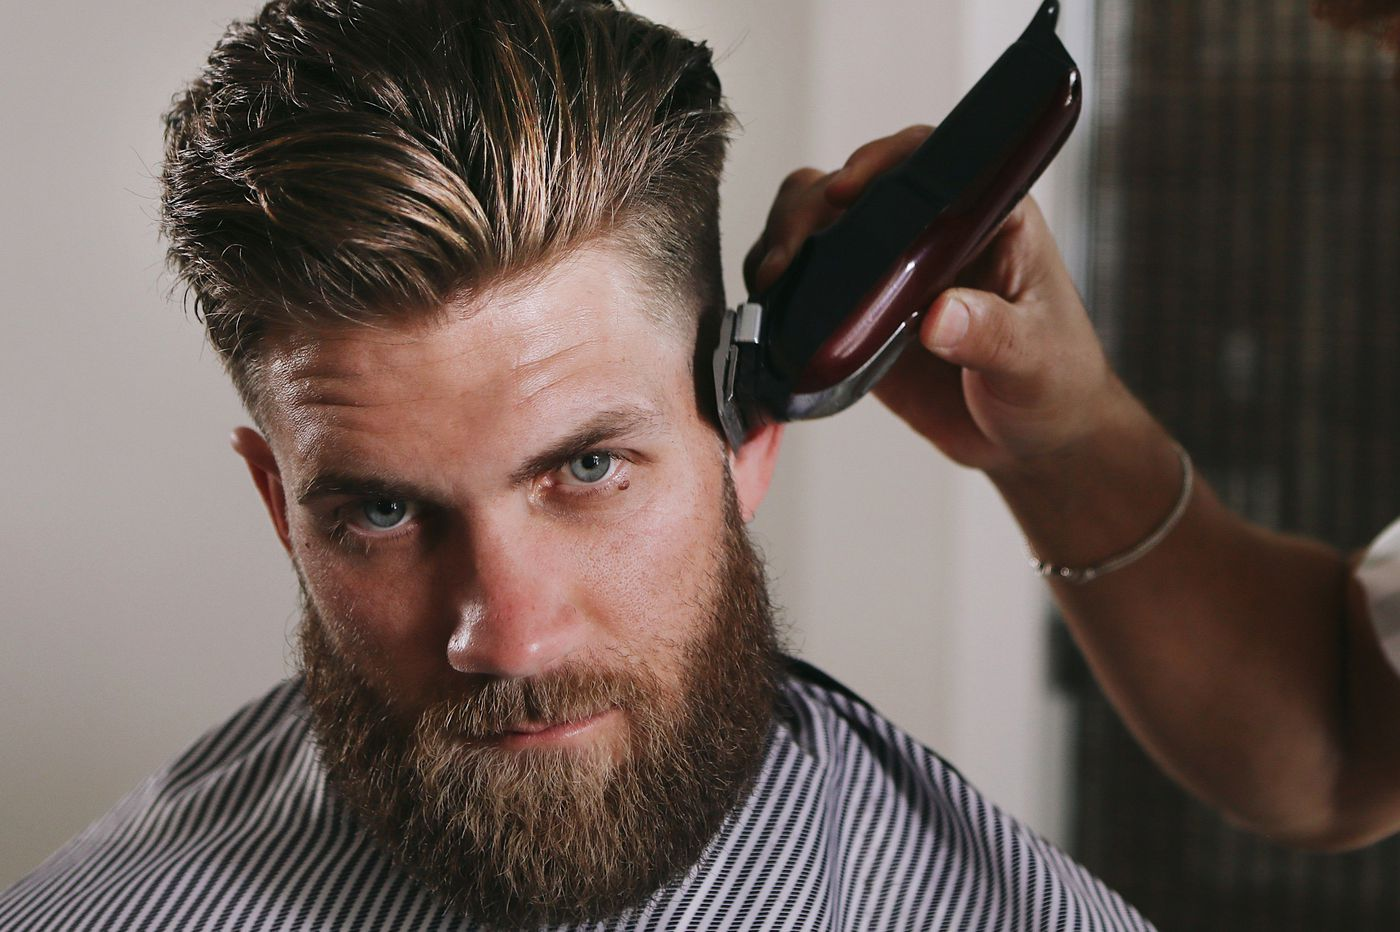 Bryce Harper-led barbershop-speakeasy mashup, the Blind Barber, to open Philly location